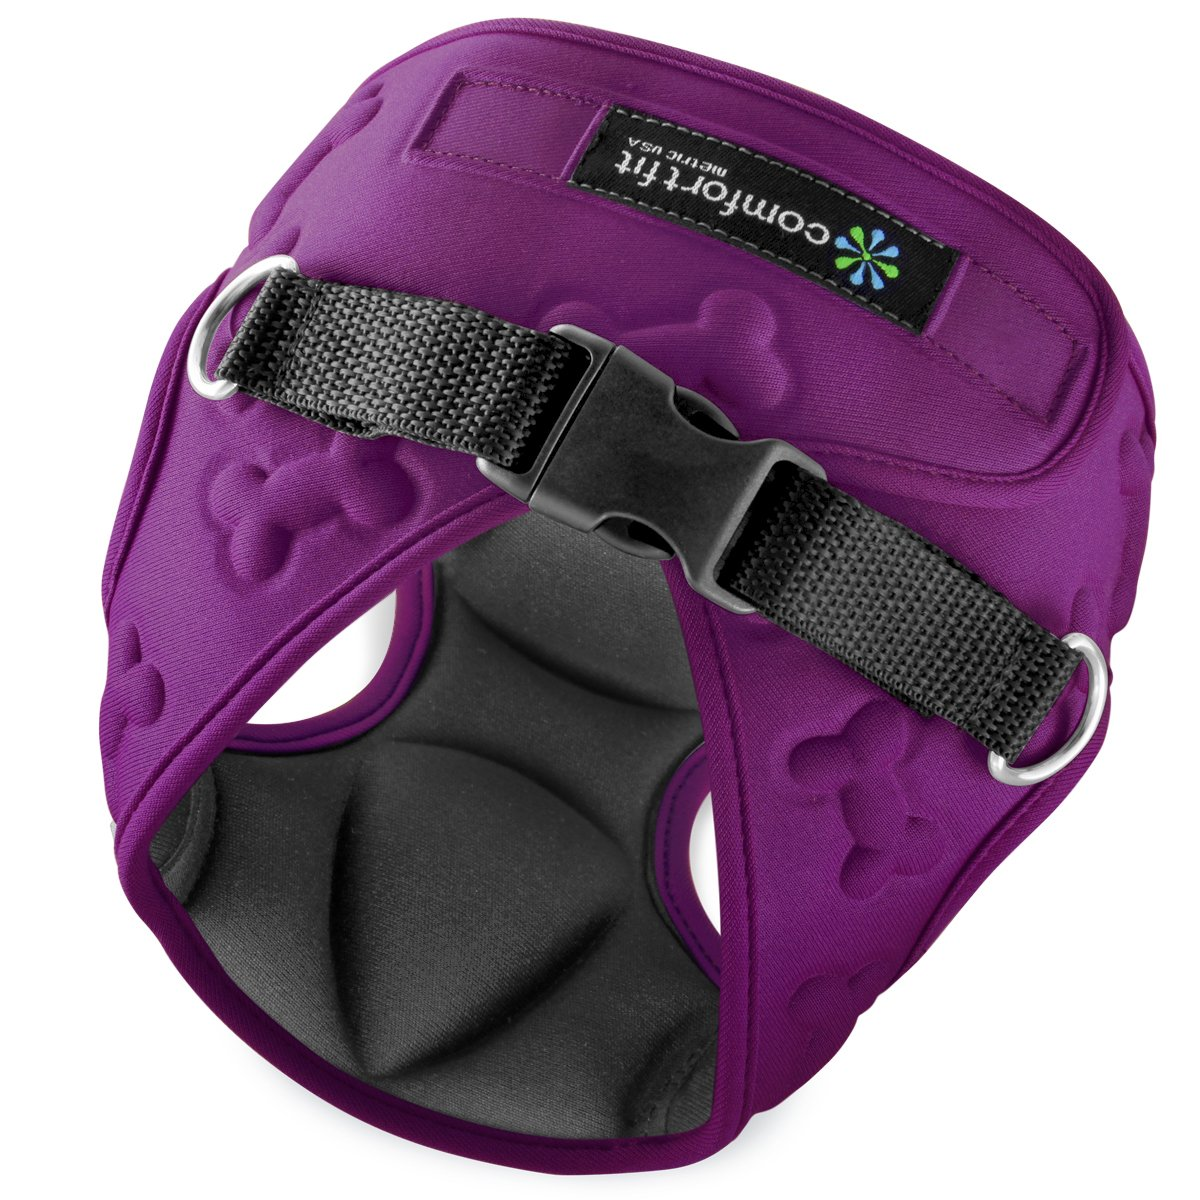 Easy to Put on and Take off Small Dog Harnesses Our small Dog Harness Vest has padded Interior and Exterior Cushioning Ensuring your Dog is Snug and Comfortable ! (Small, Purple)